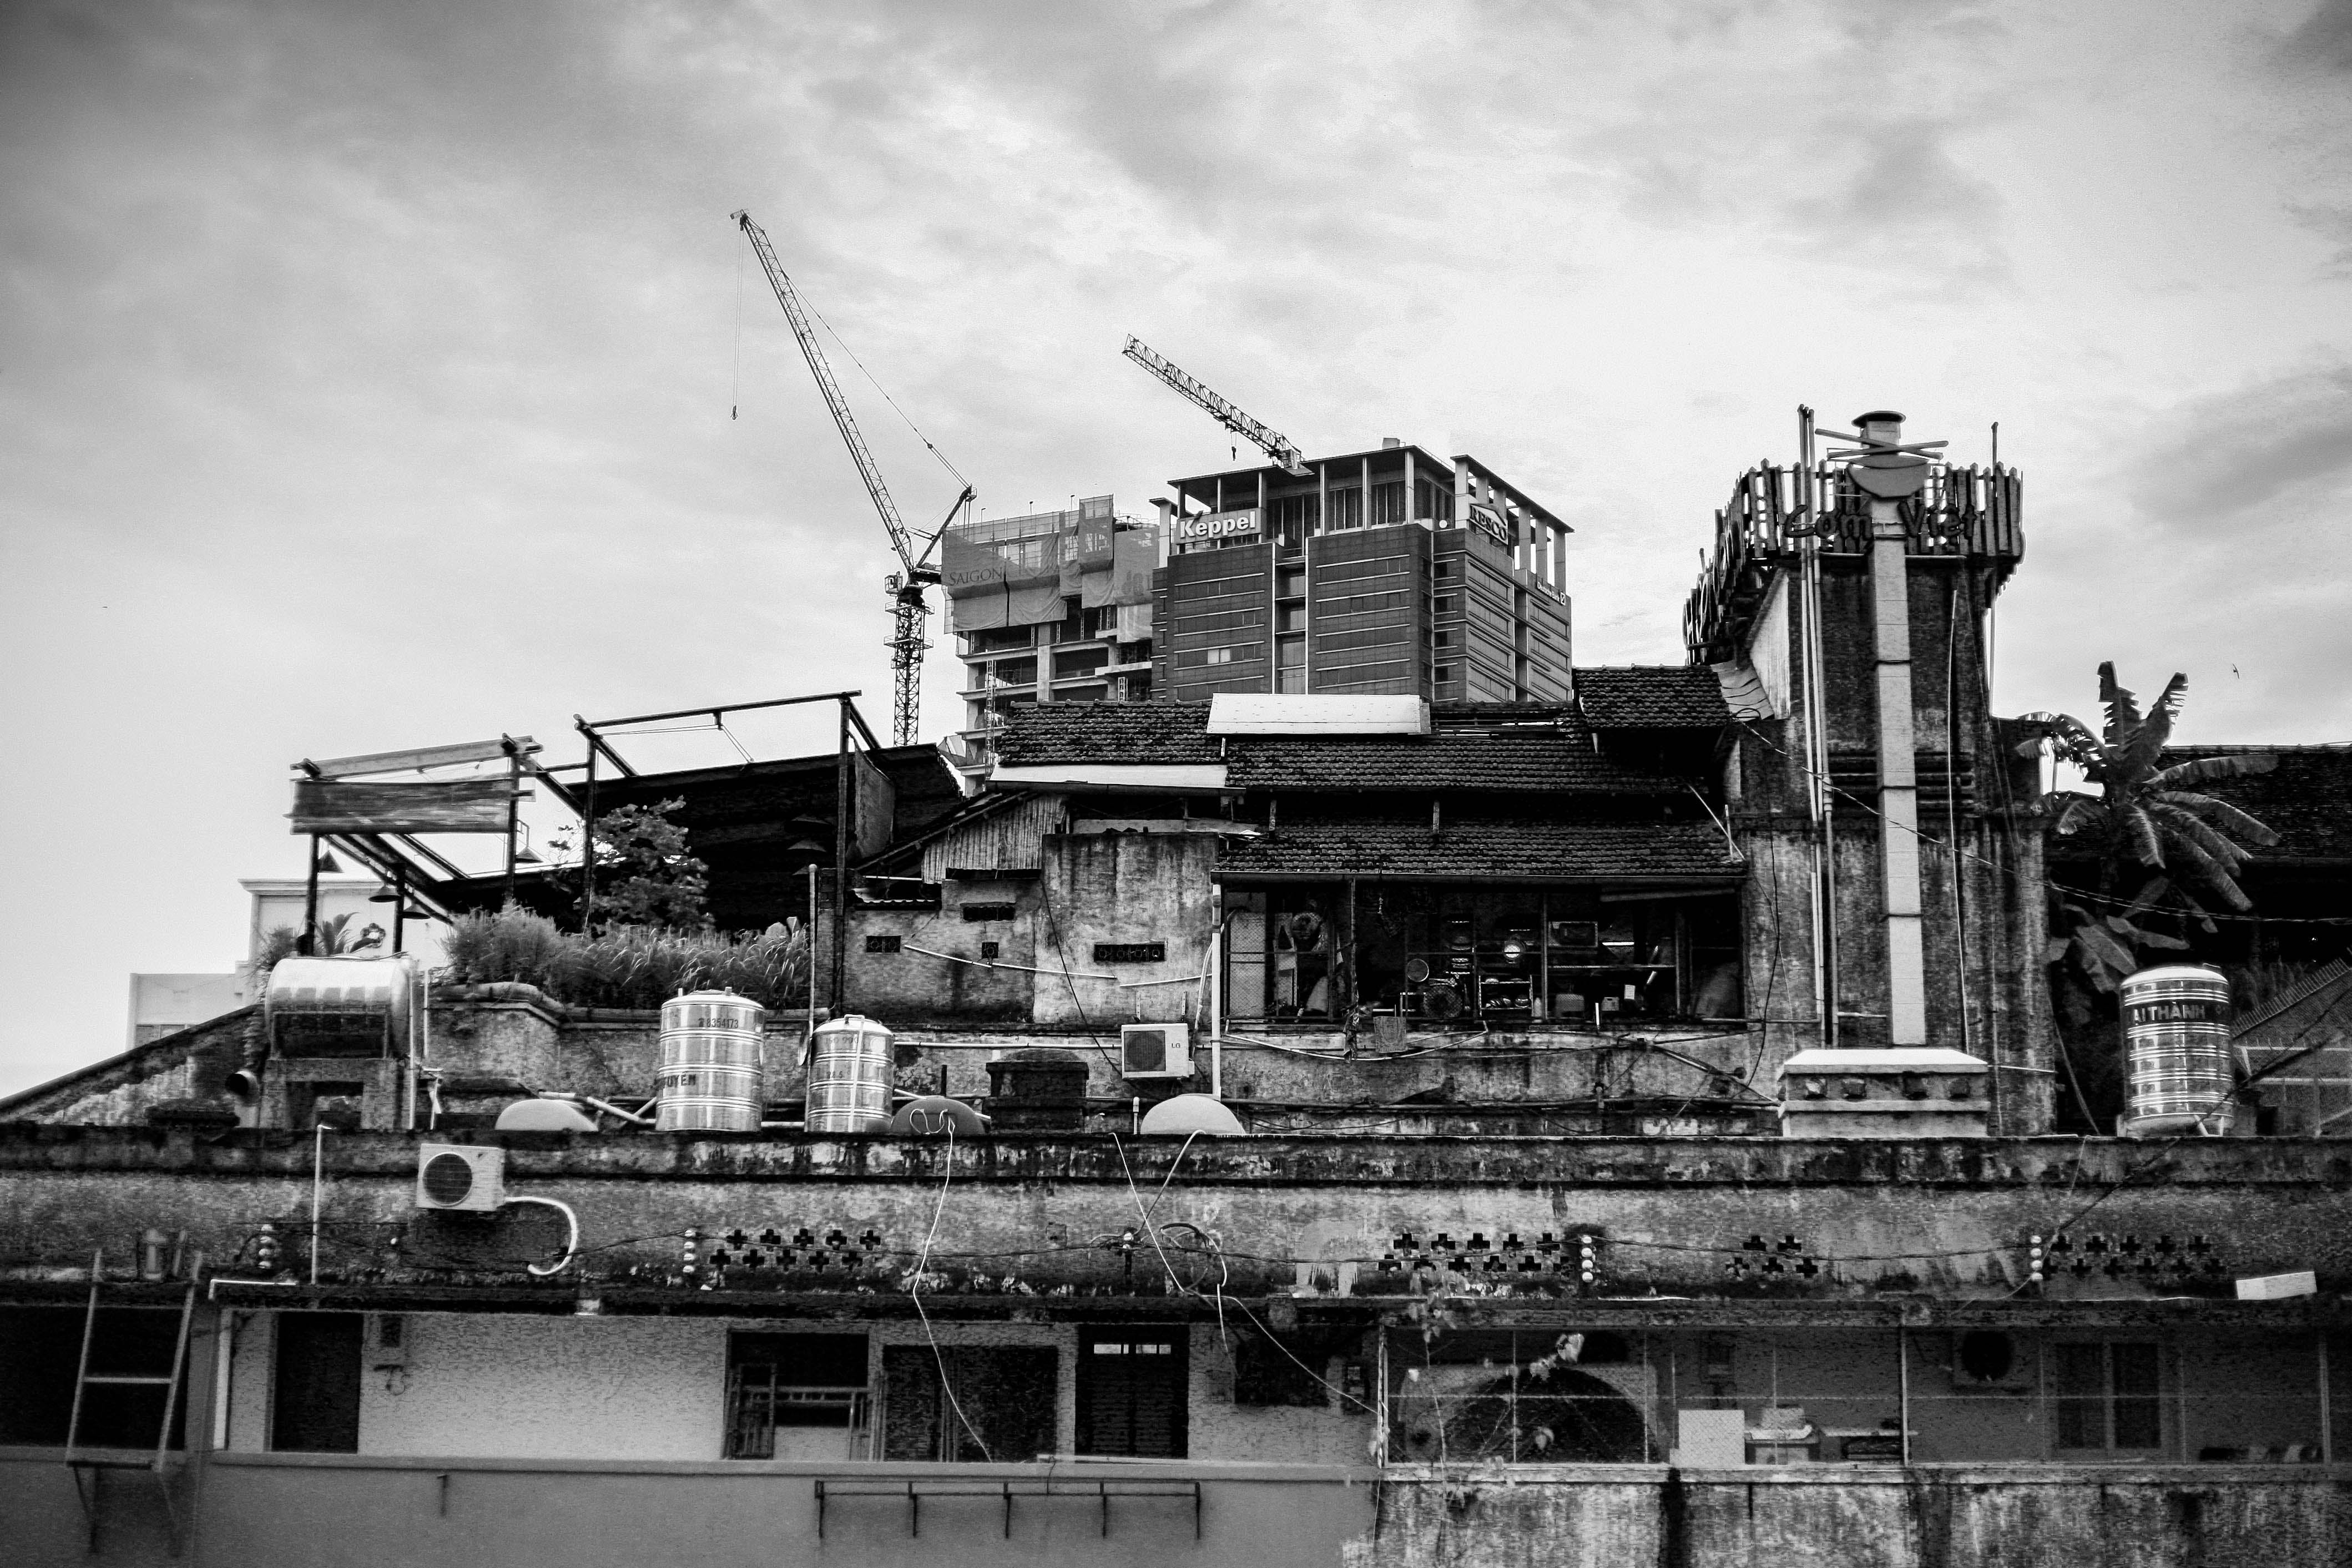 Grayscale Photography of Building With Tower Crane